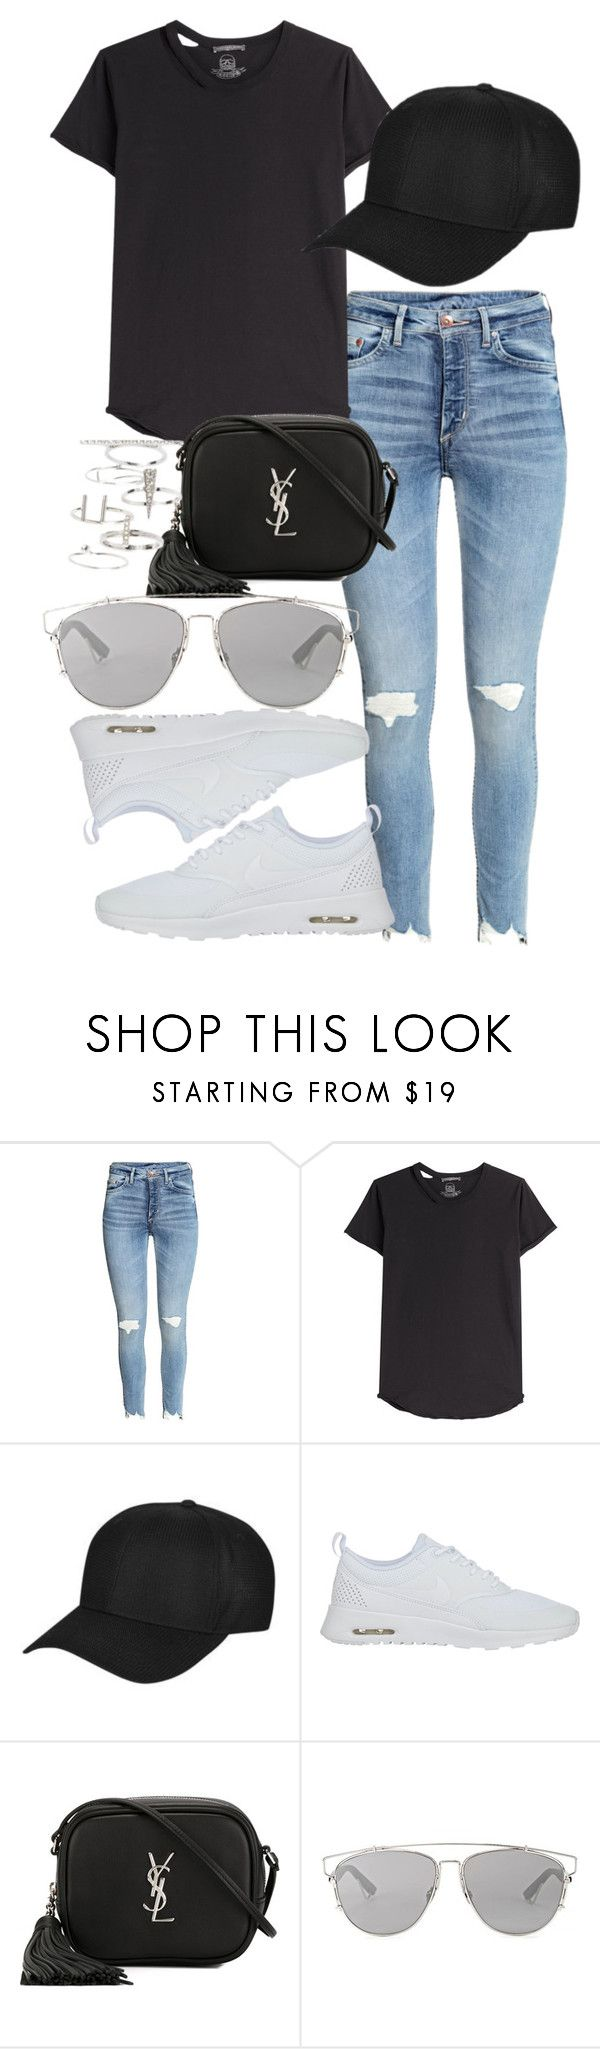 """""""Untitled #124"""" by voiceforfashion ❤ liked on Polyvore featuring Alexander McQueen, Topshop, NIKE, Yves Saint Laurent, Christian Dior and polyvoreeditorial"""